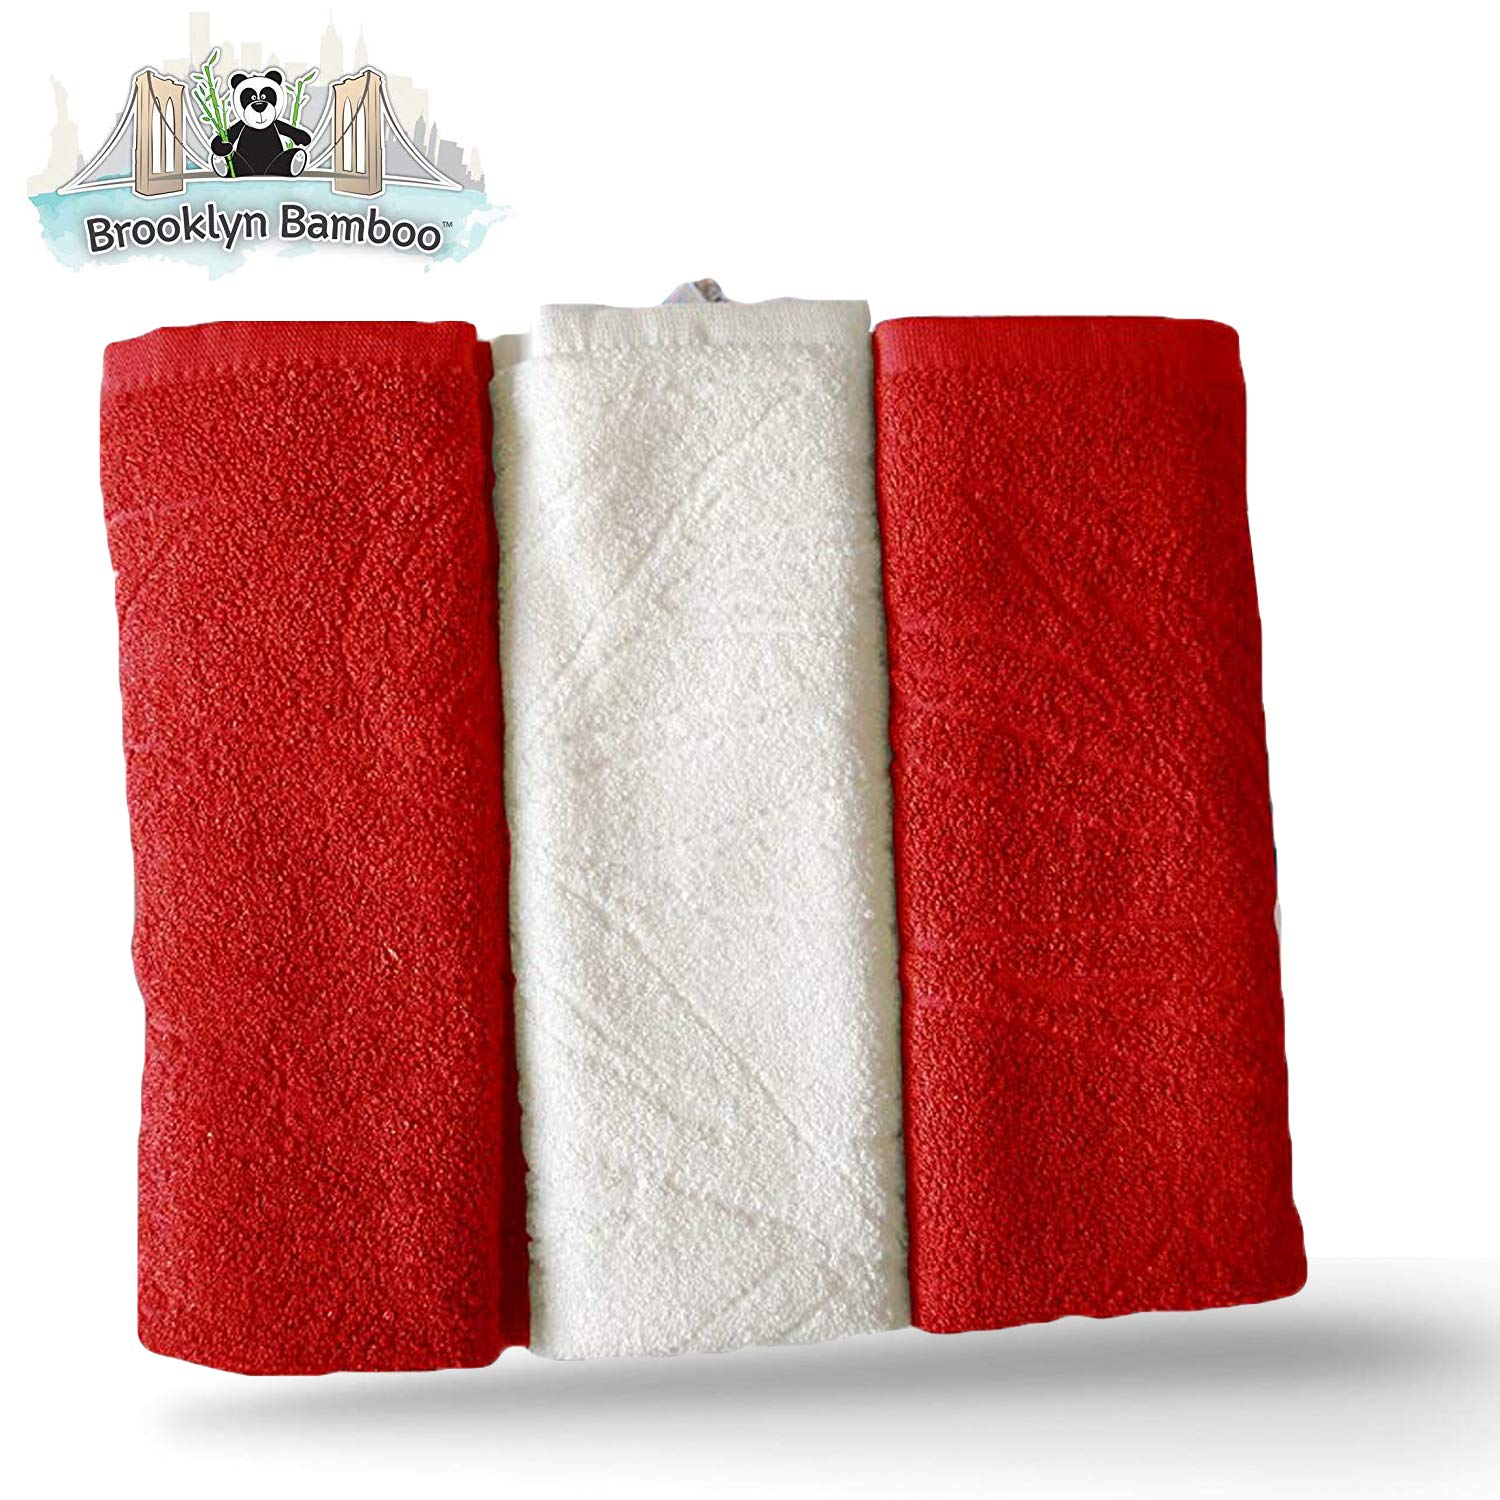 Brooklyn Bamboo Kitchen Dish Towels Soft Reusable Absorbent Organic Eco  Friendly More Durable Than Cotton, 26 x 18 Inches, Pack of 3, Red